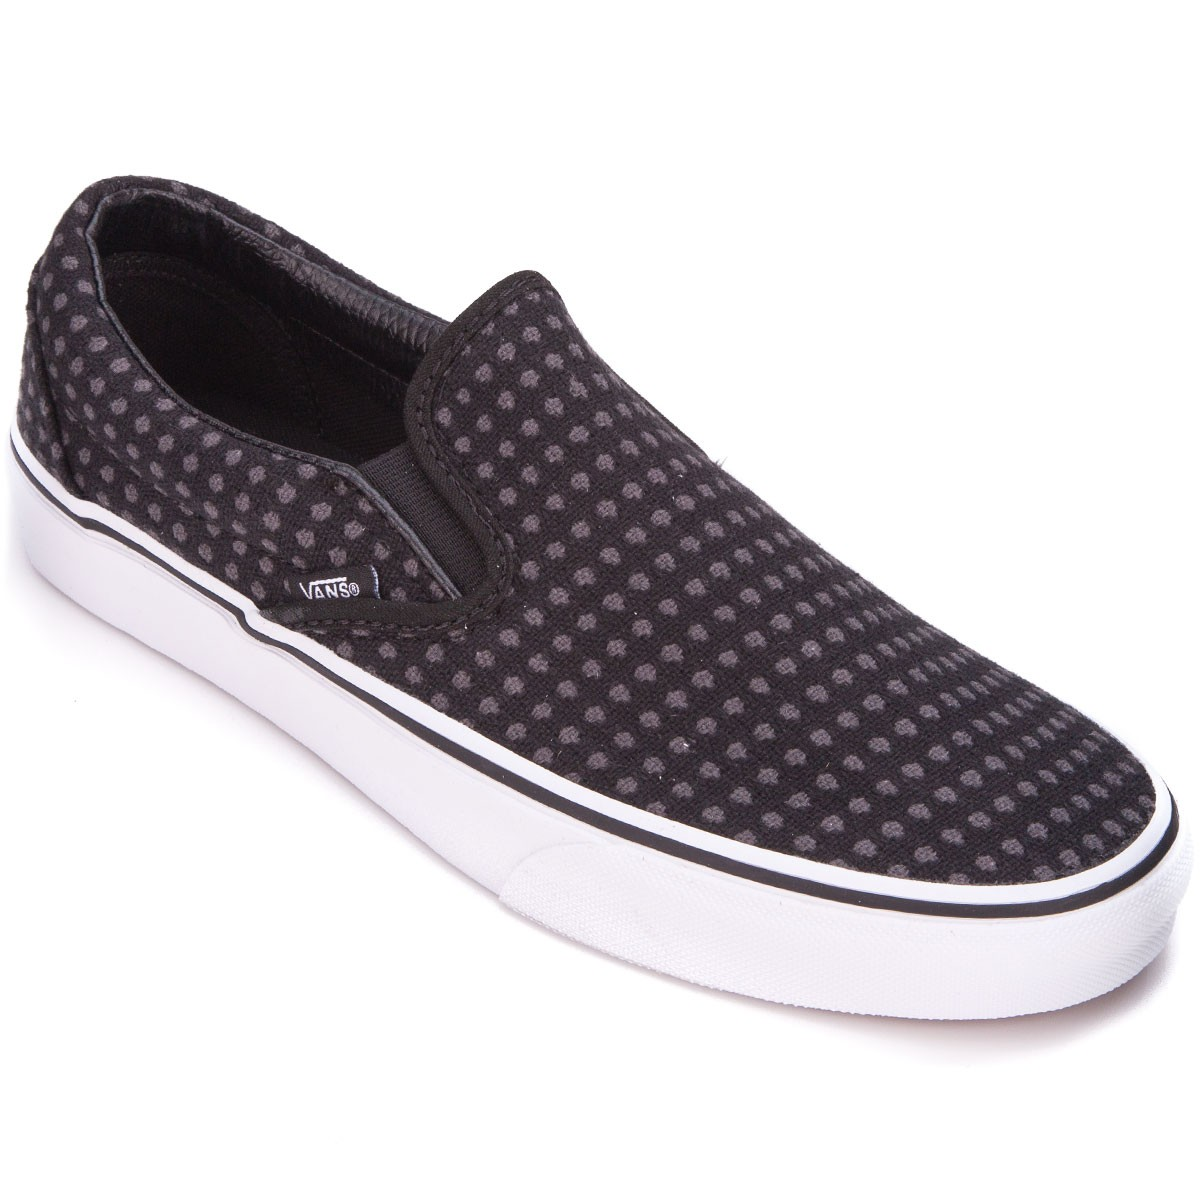 8375677685 Vans Classic Slip-On Womens Shoes